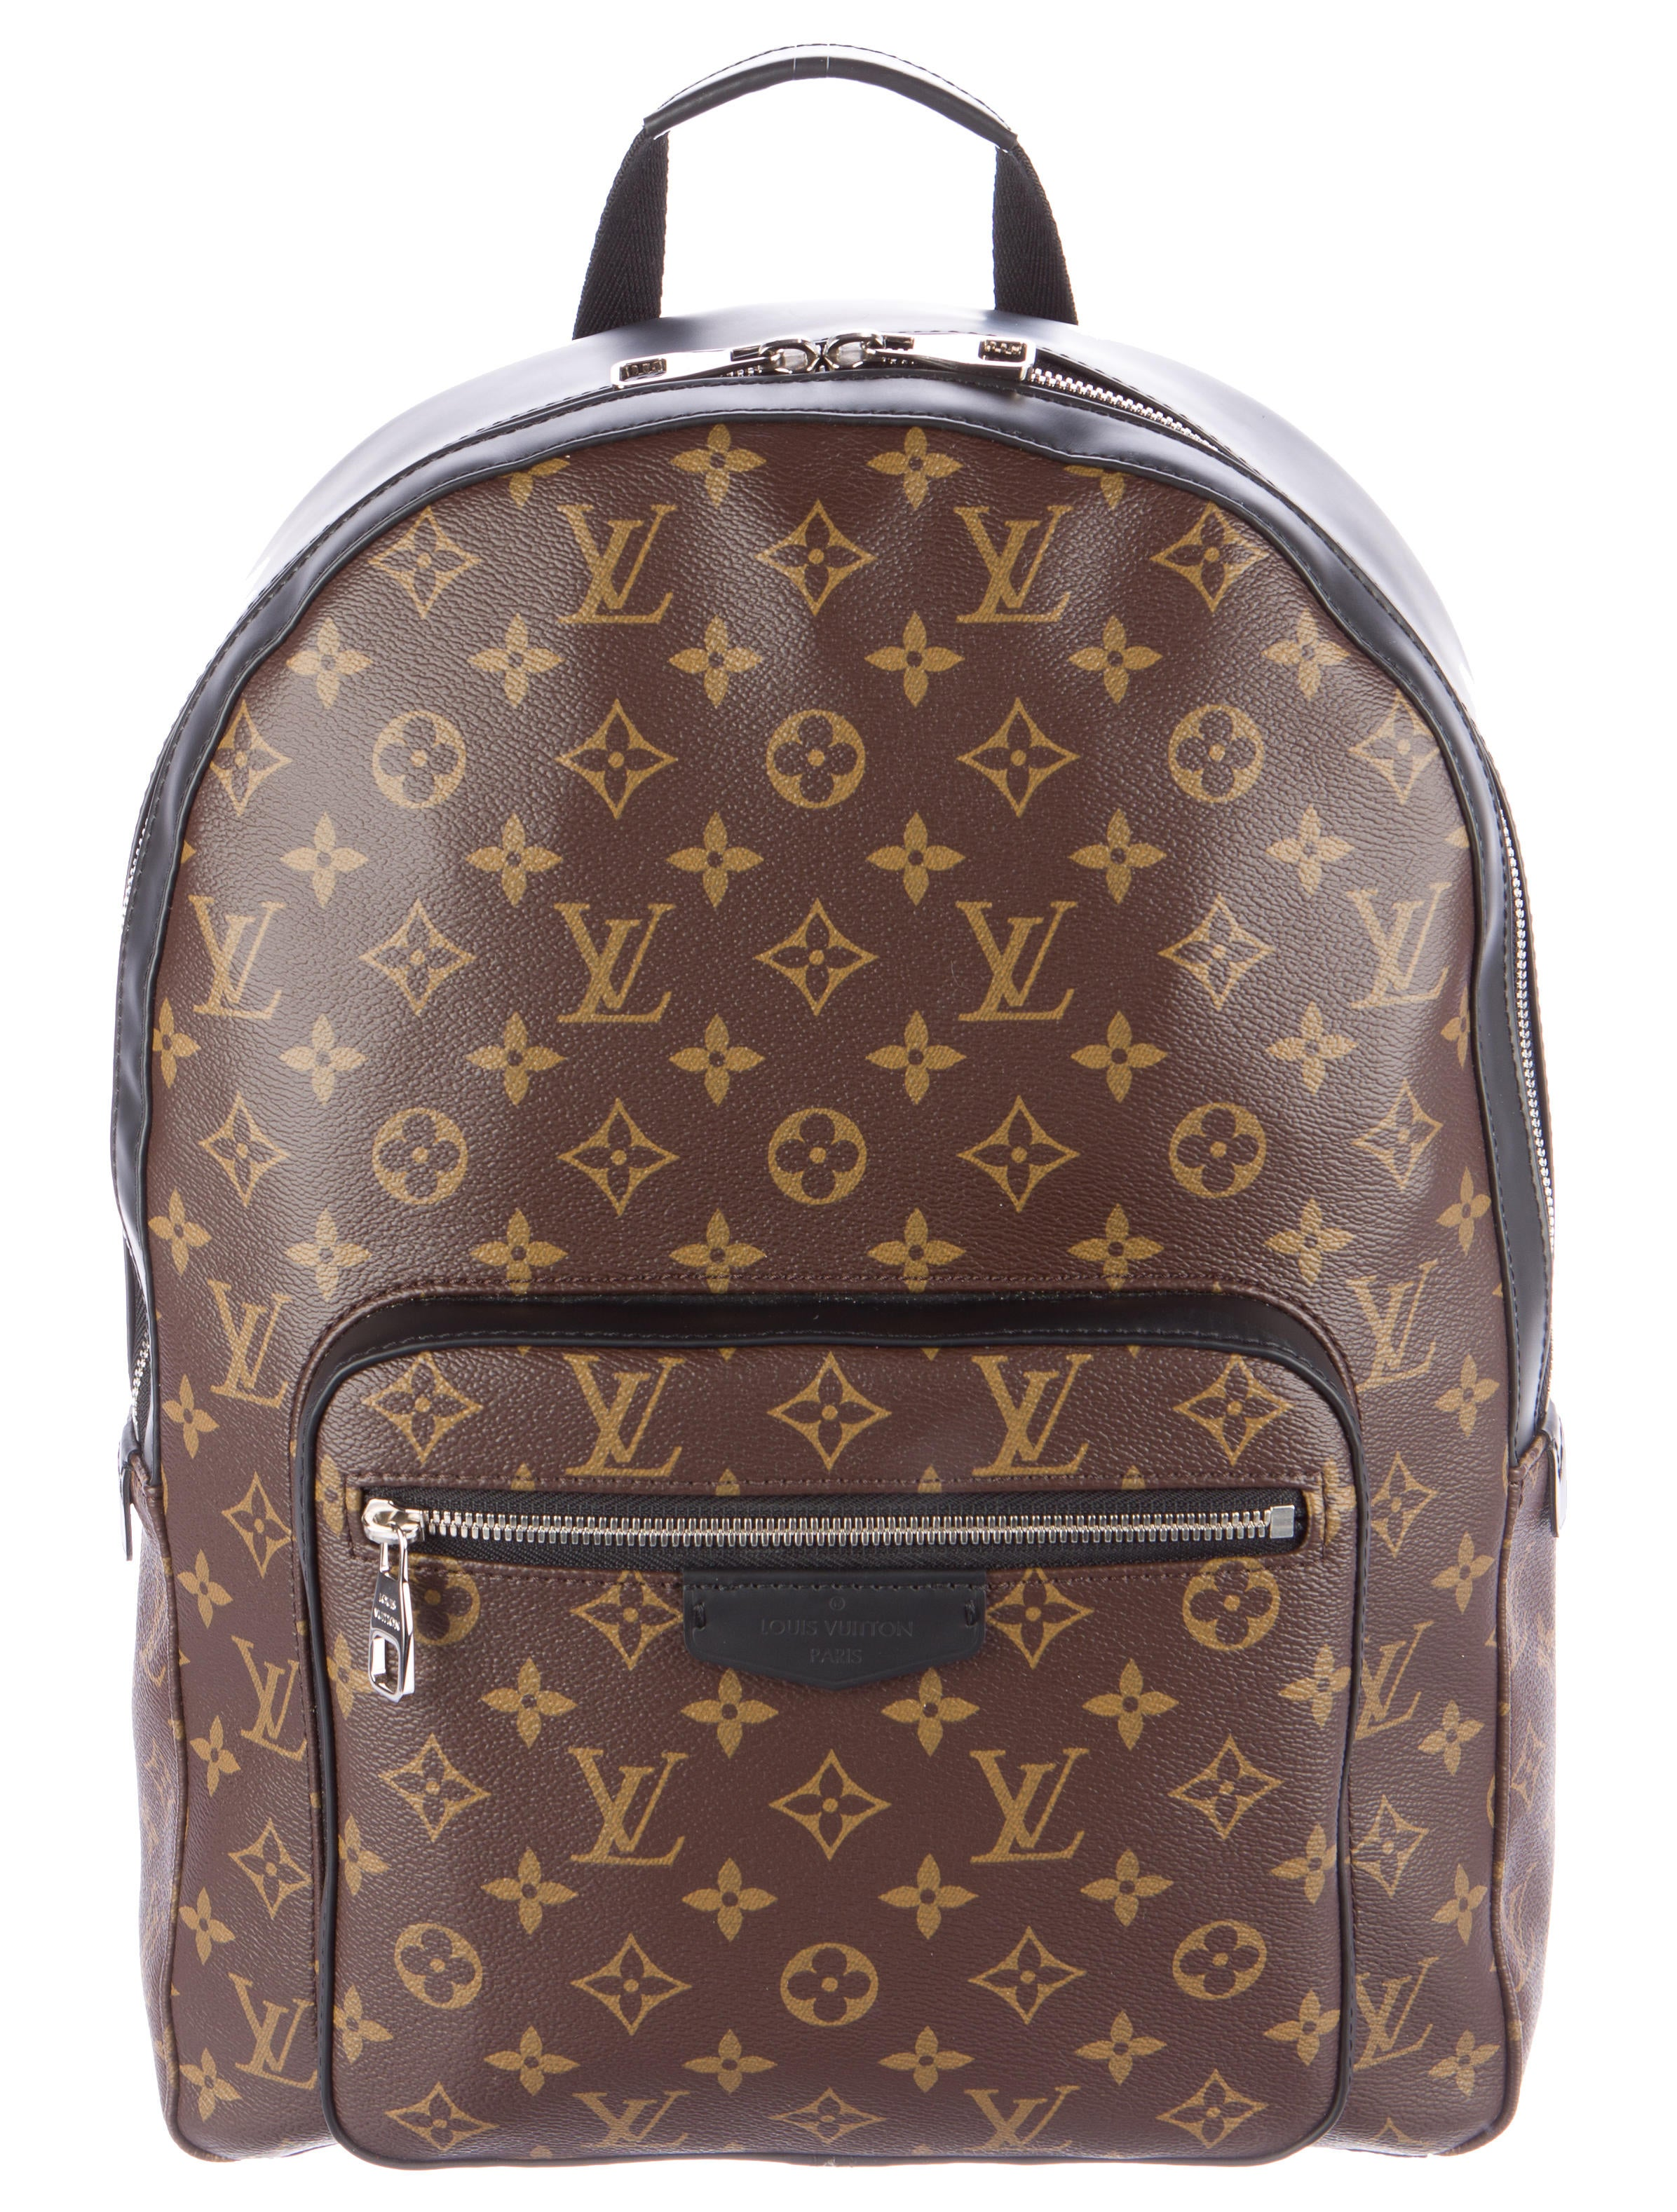 b238bfa5dd25 Louis Vuitton Josh Monogram Macassar Backpack - Bags - LOU88445 ...